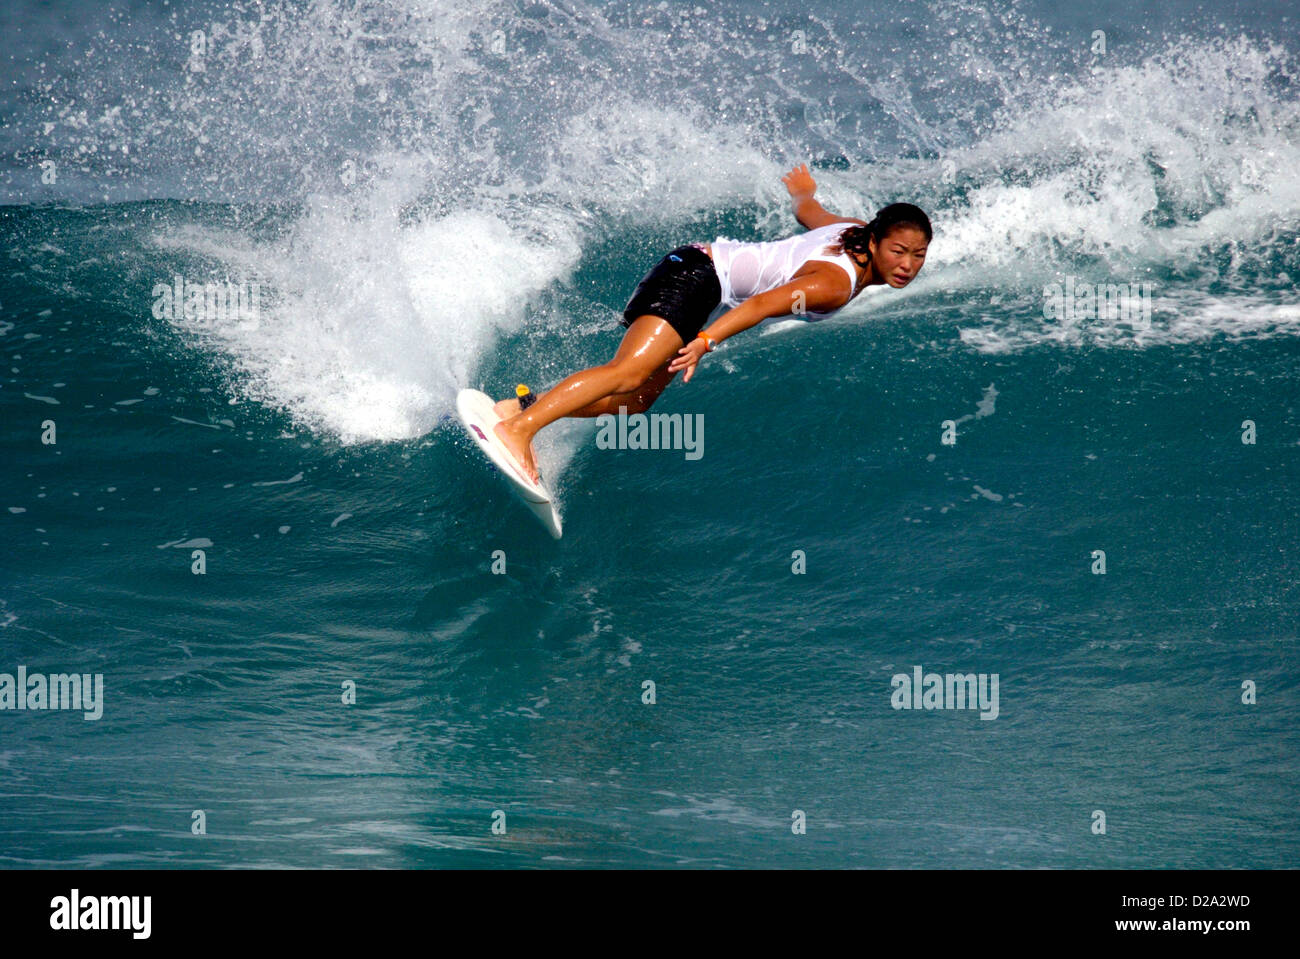 Hawaii, Oahu. Girl Surfing At 'Gas Chambers' - Stock Image